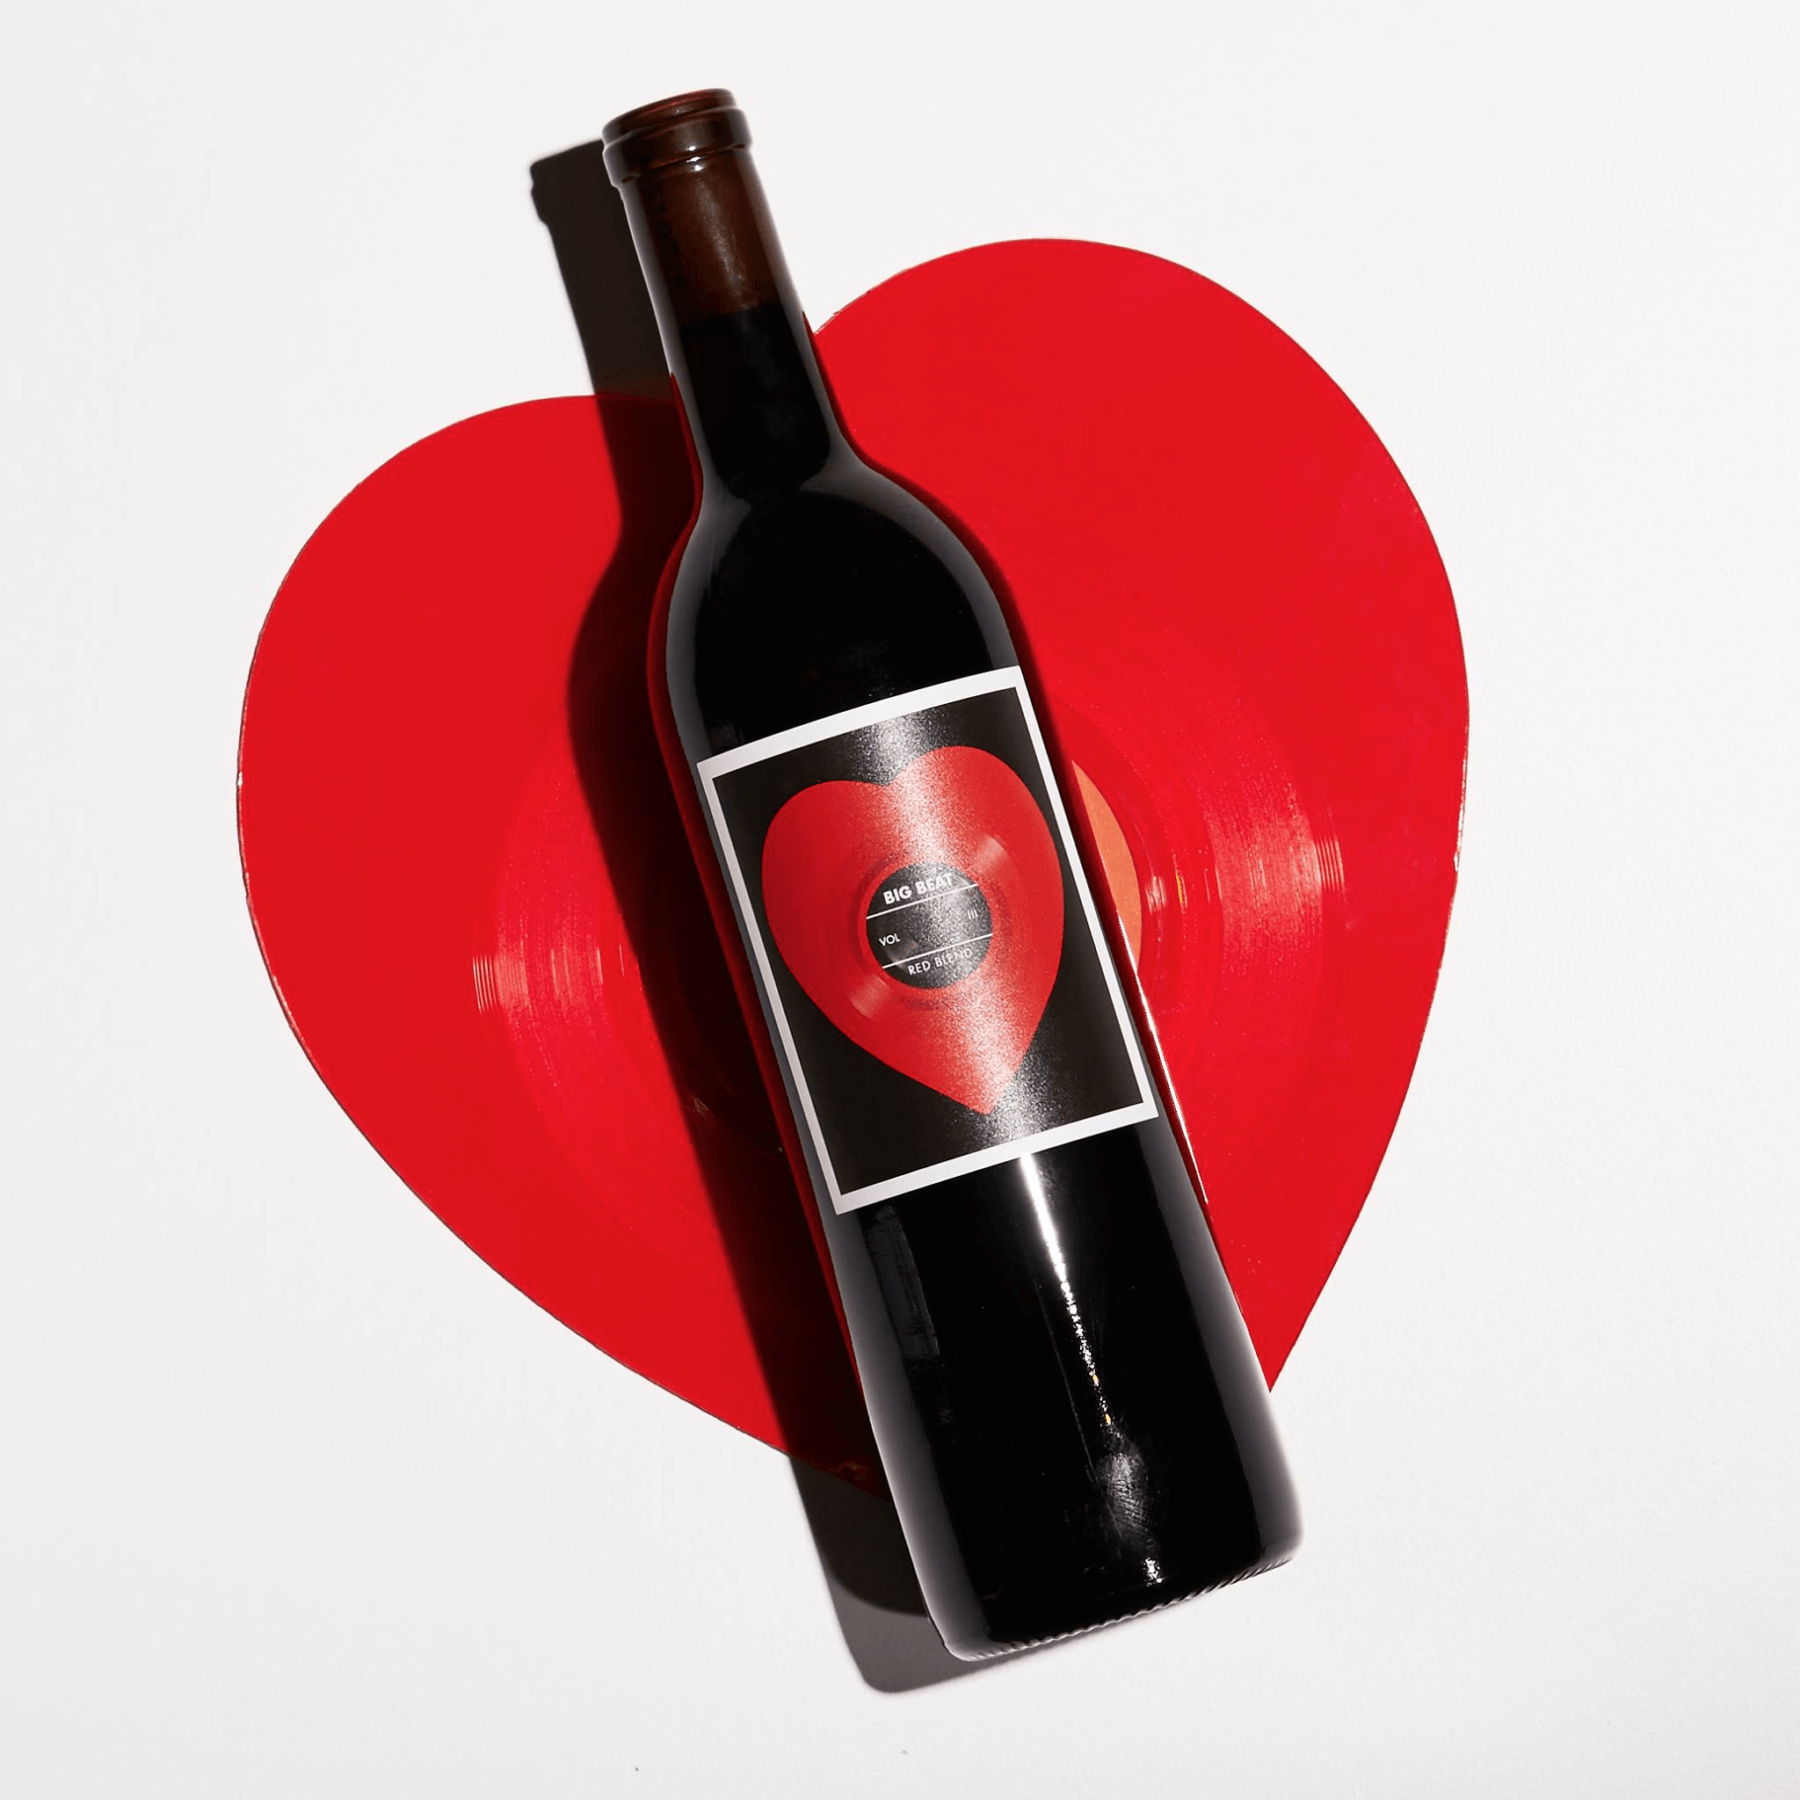 winc valentines day wine club deal 4 bottles for 30 - Valentines Day Wine